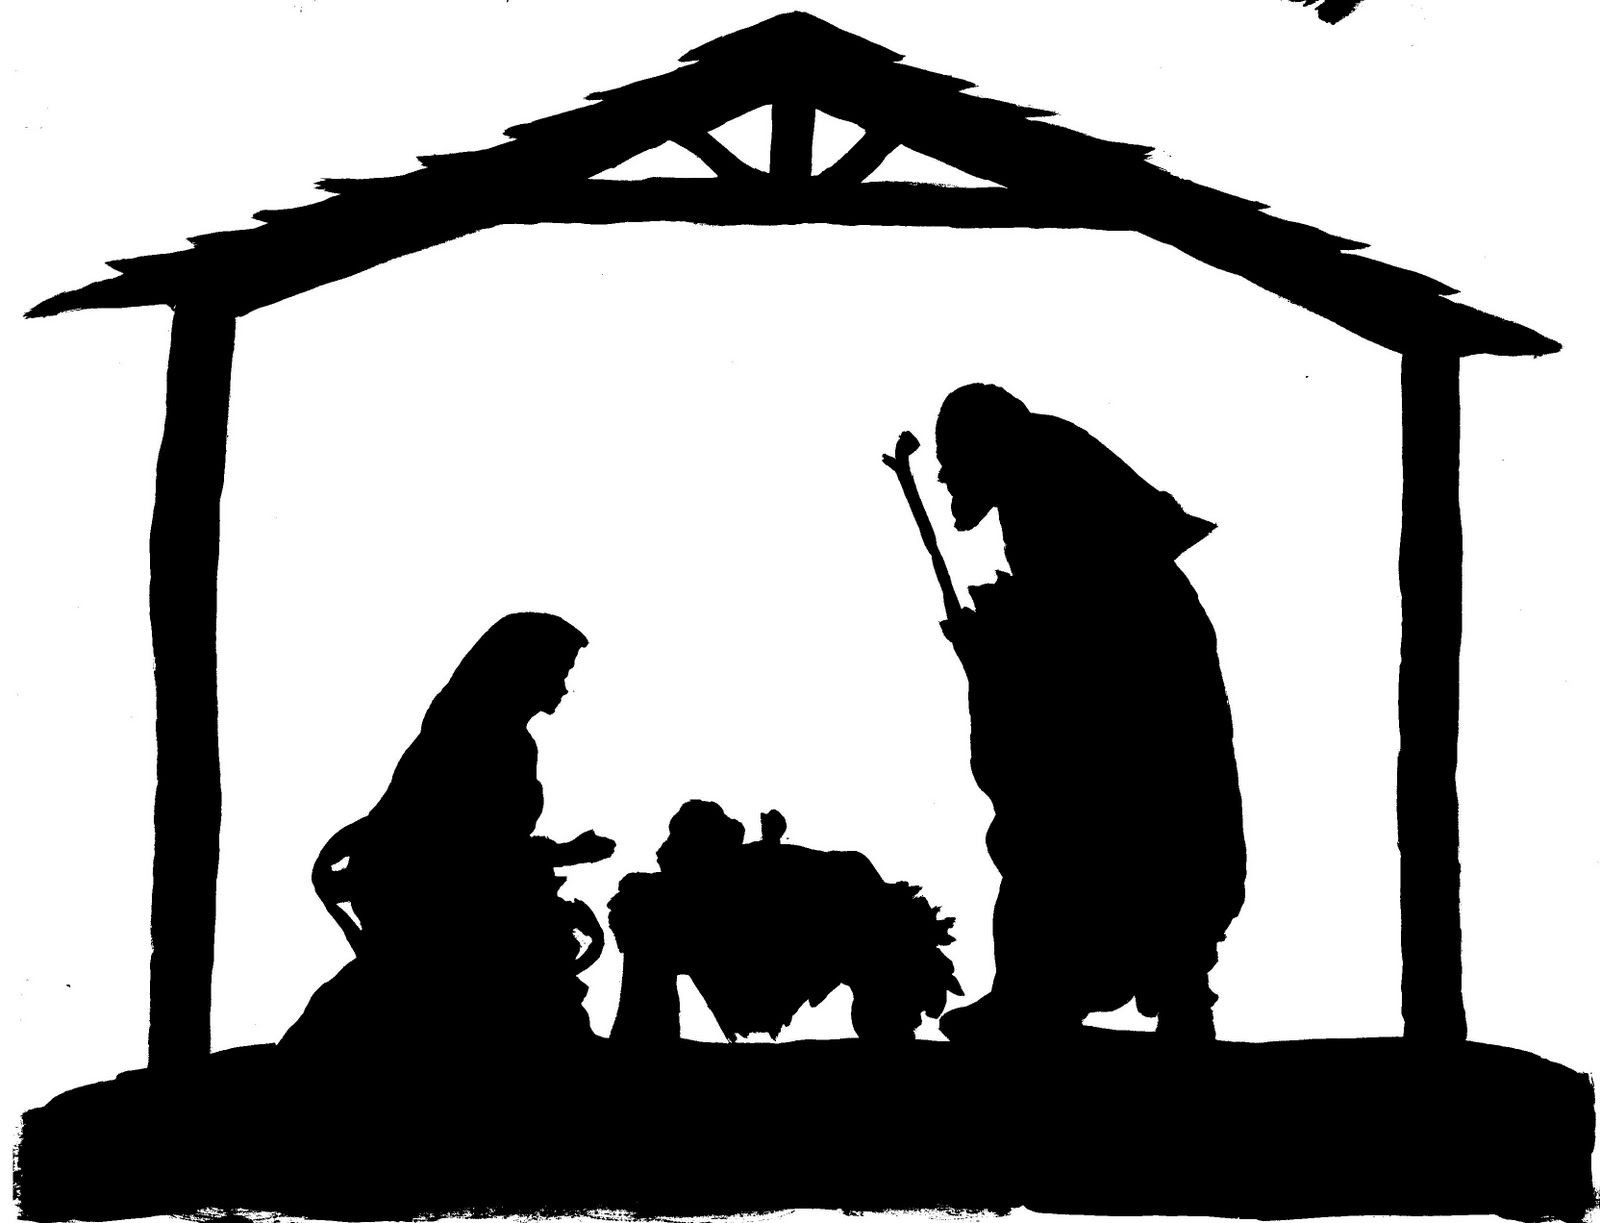 Nativity Silhouette Free at GetDrawings.com.